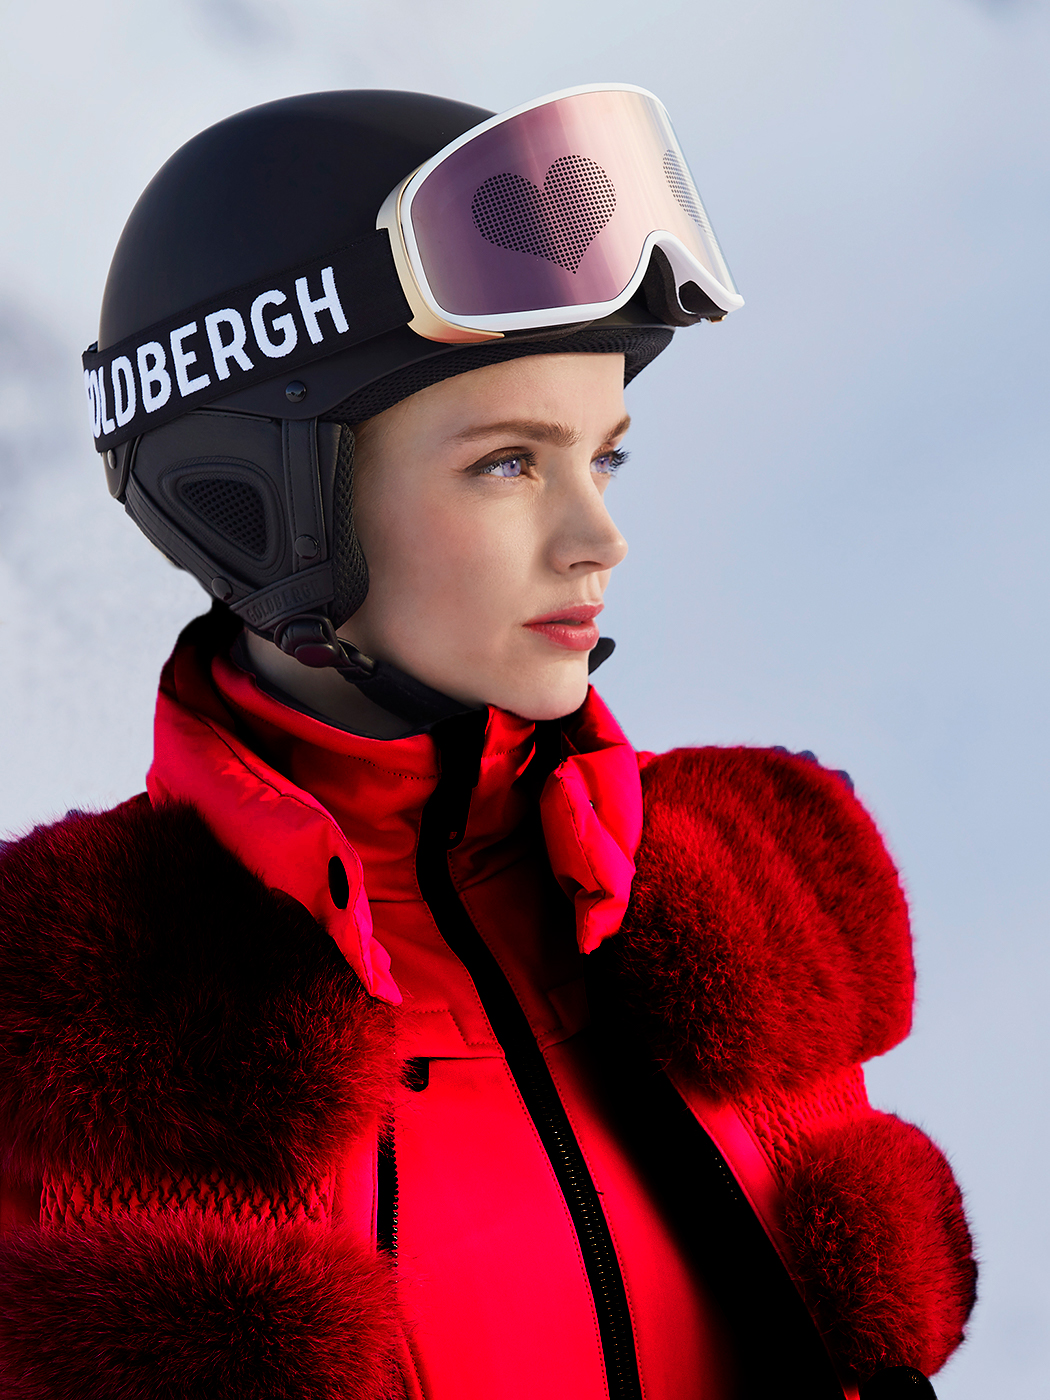 Foxy faux fur red gilet by Goldbergh worn with the Phoenix ski suit in red